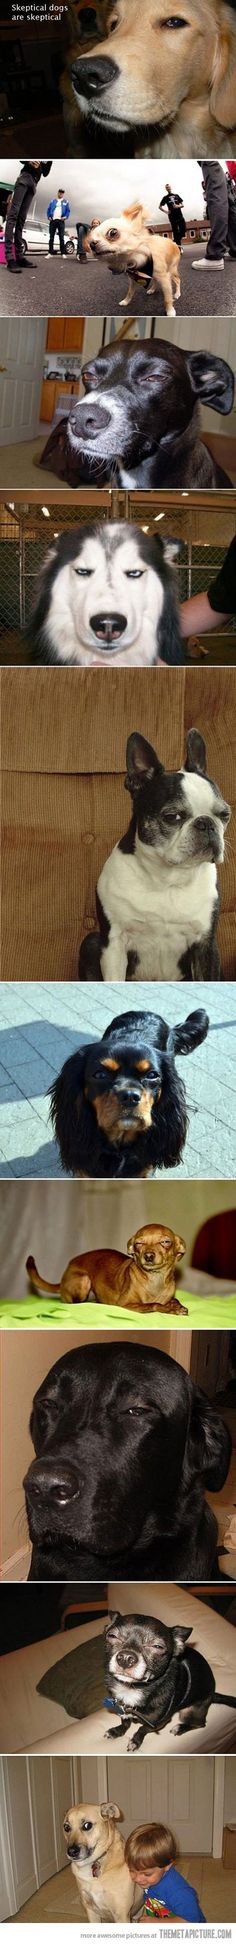 Skeptical dogs are skeptical…